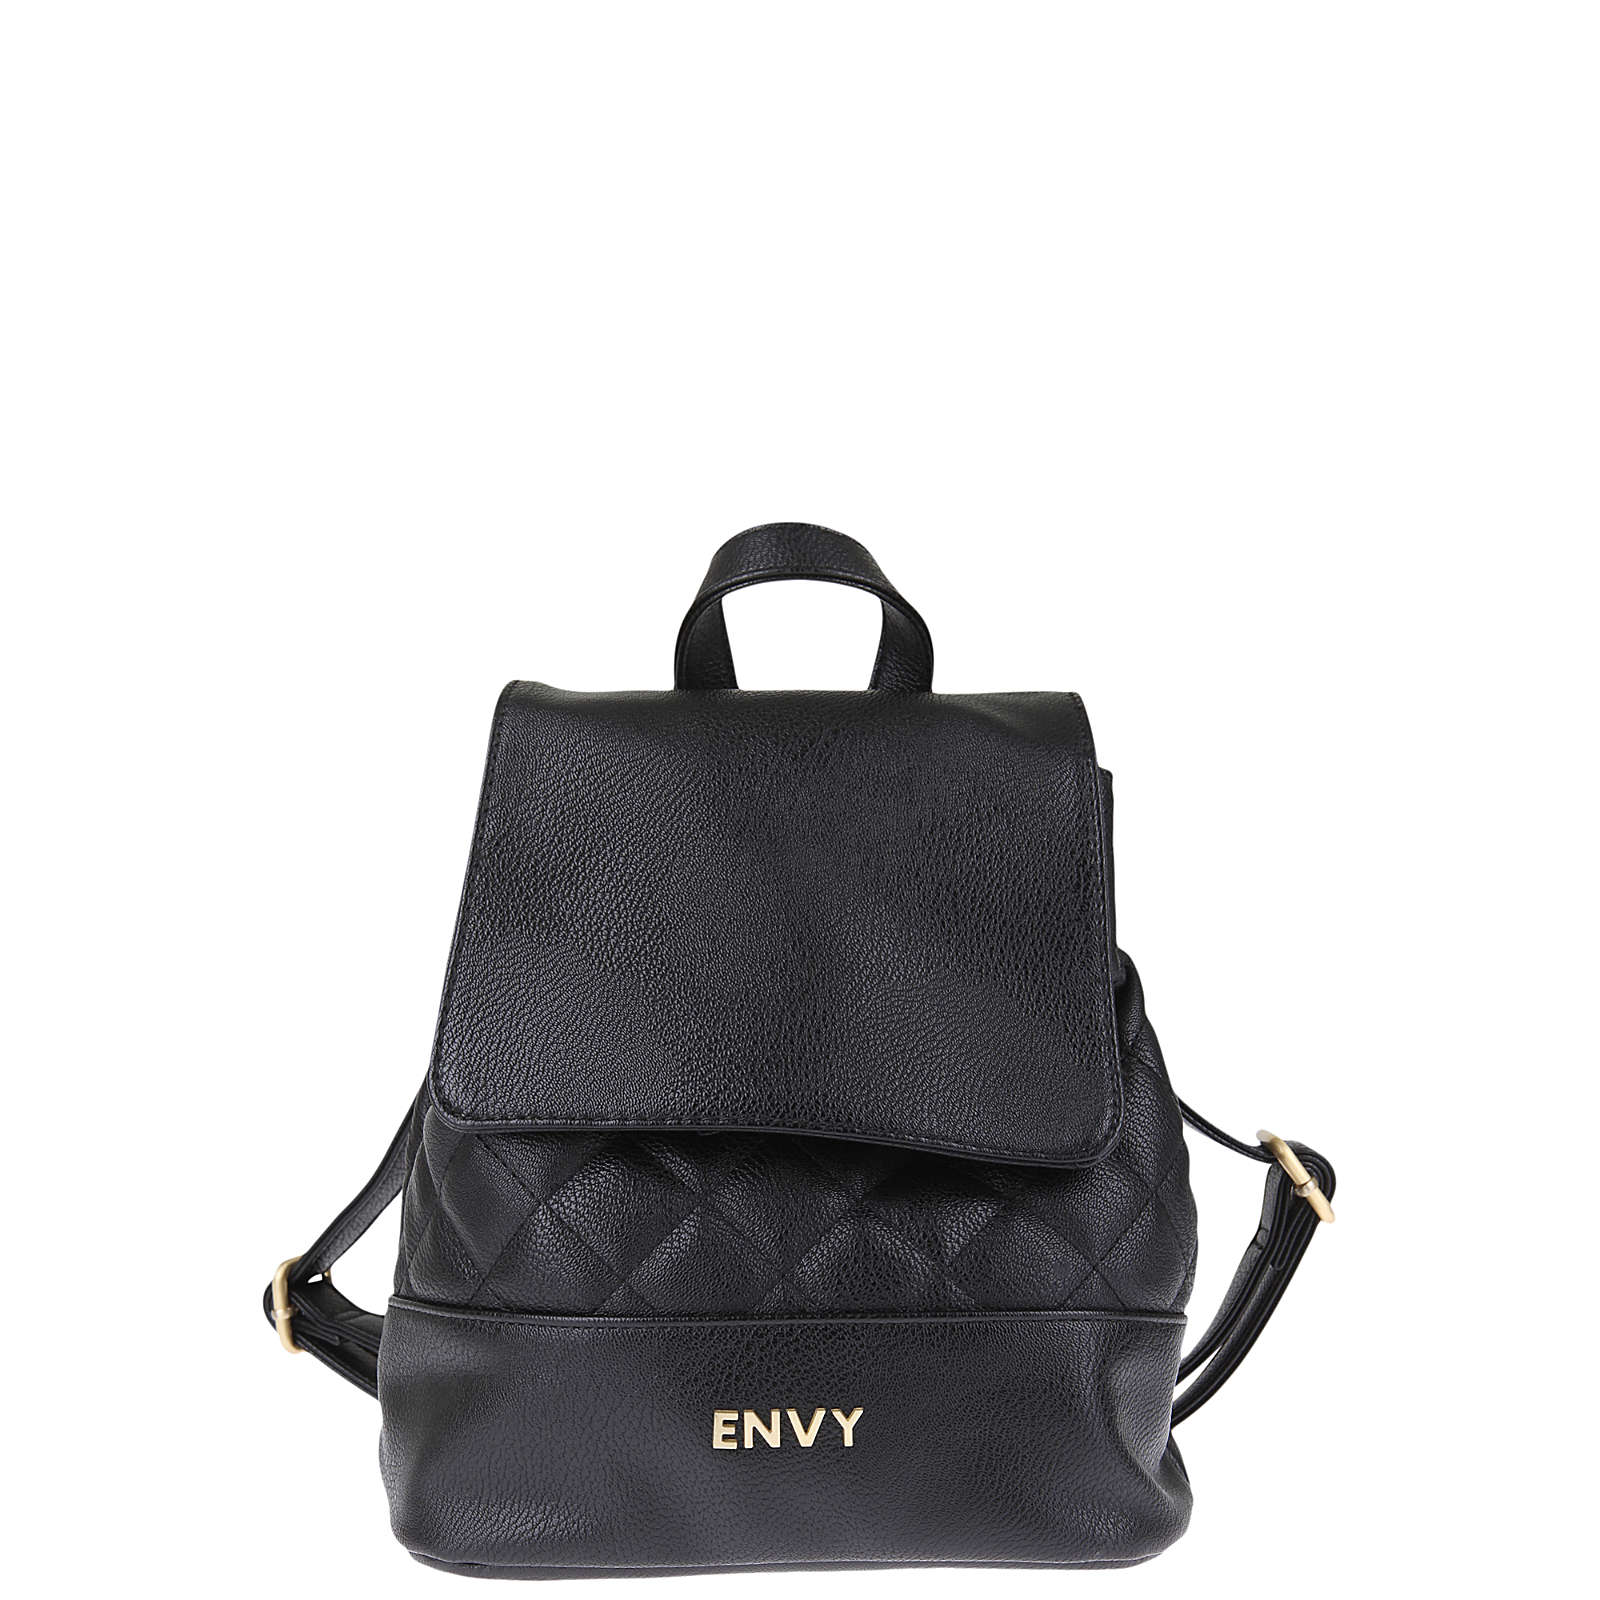 House of Envy Rucksack SHINE BRIGHT schwarz Damen